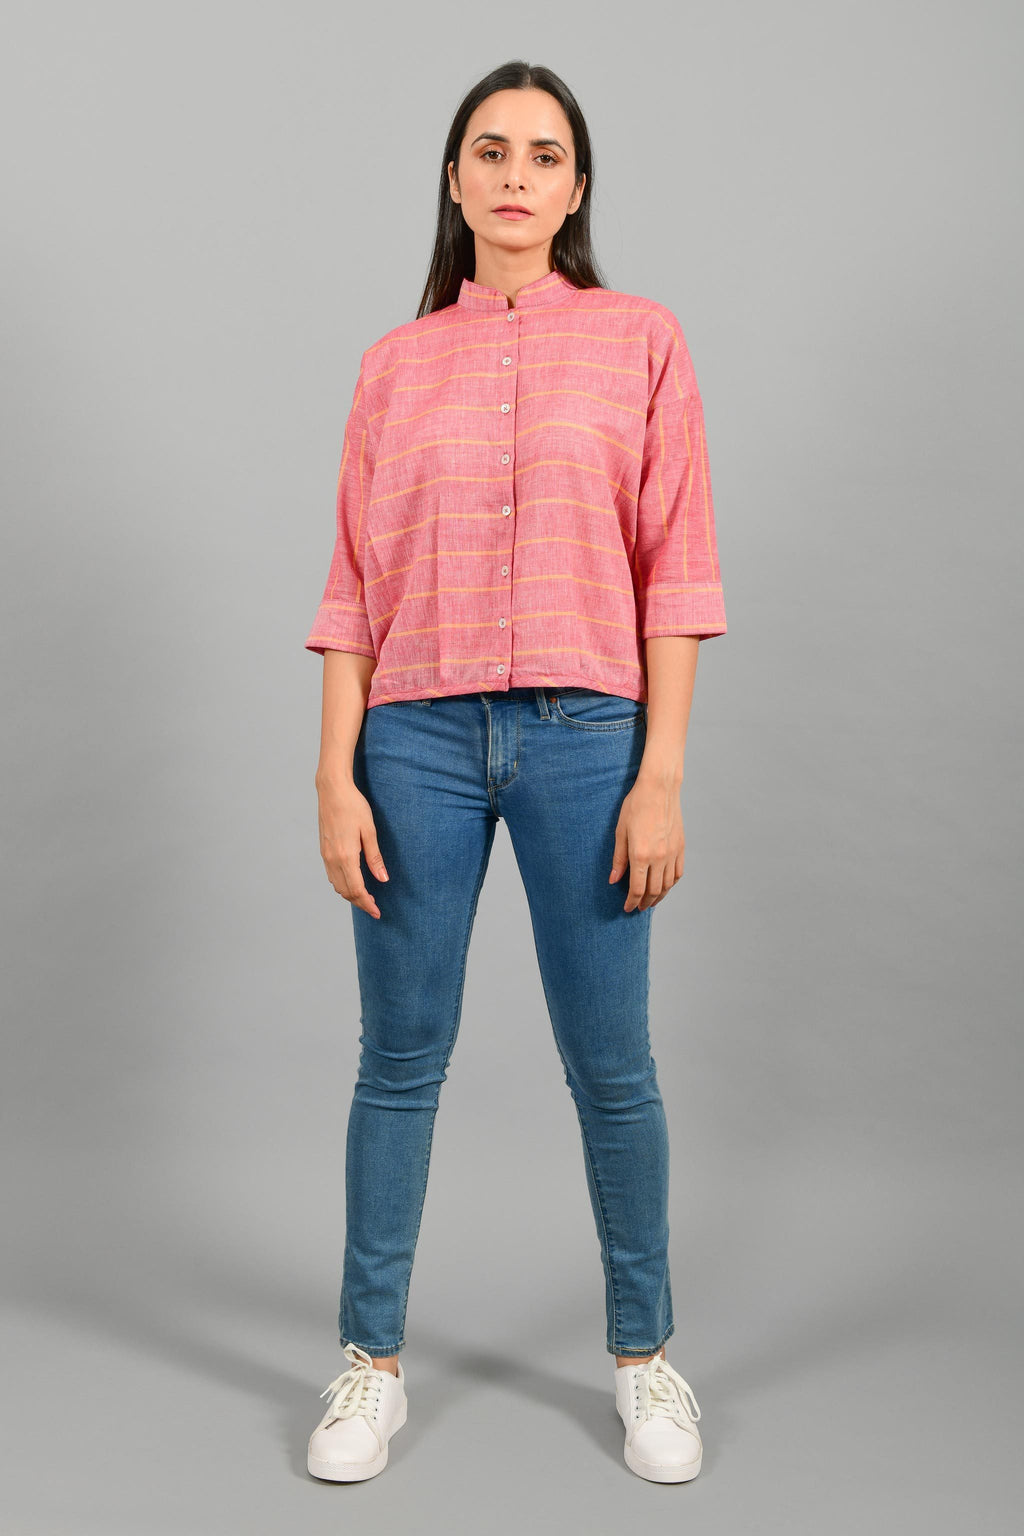 Front pose of an Indian female womenswear fashion model in a red chambray with orange stripes handspun and handwoven khadi cotton free size top by Cotton Rack.